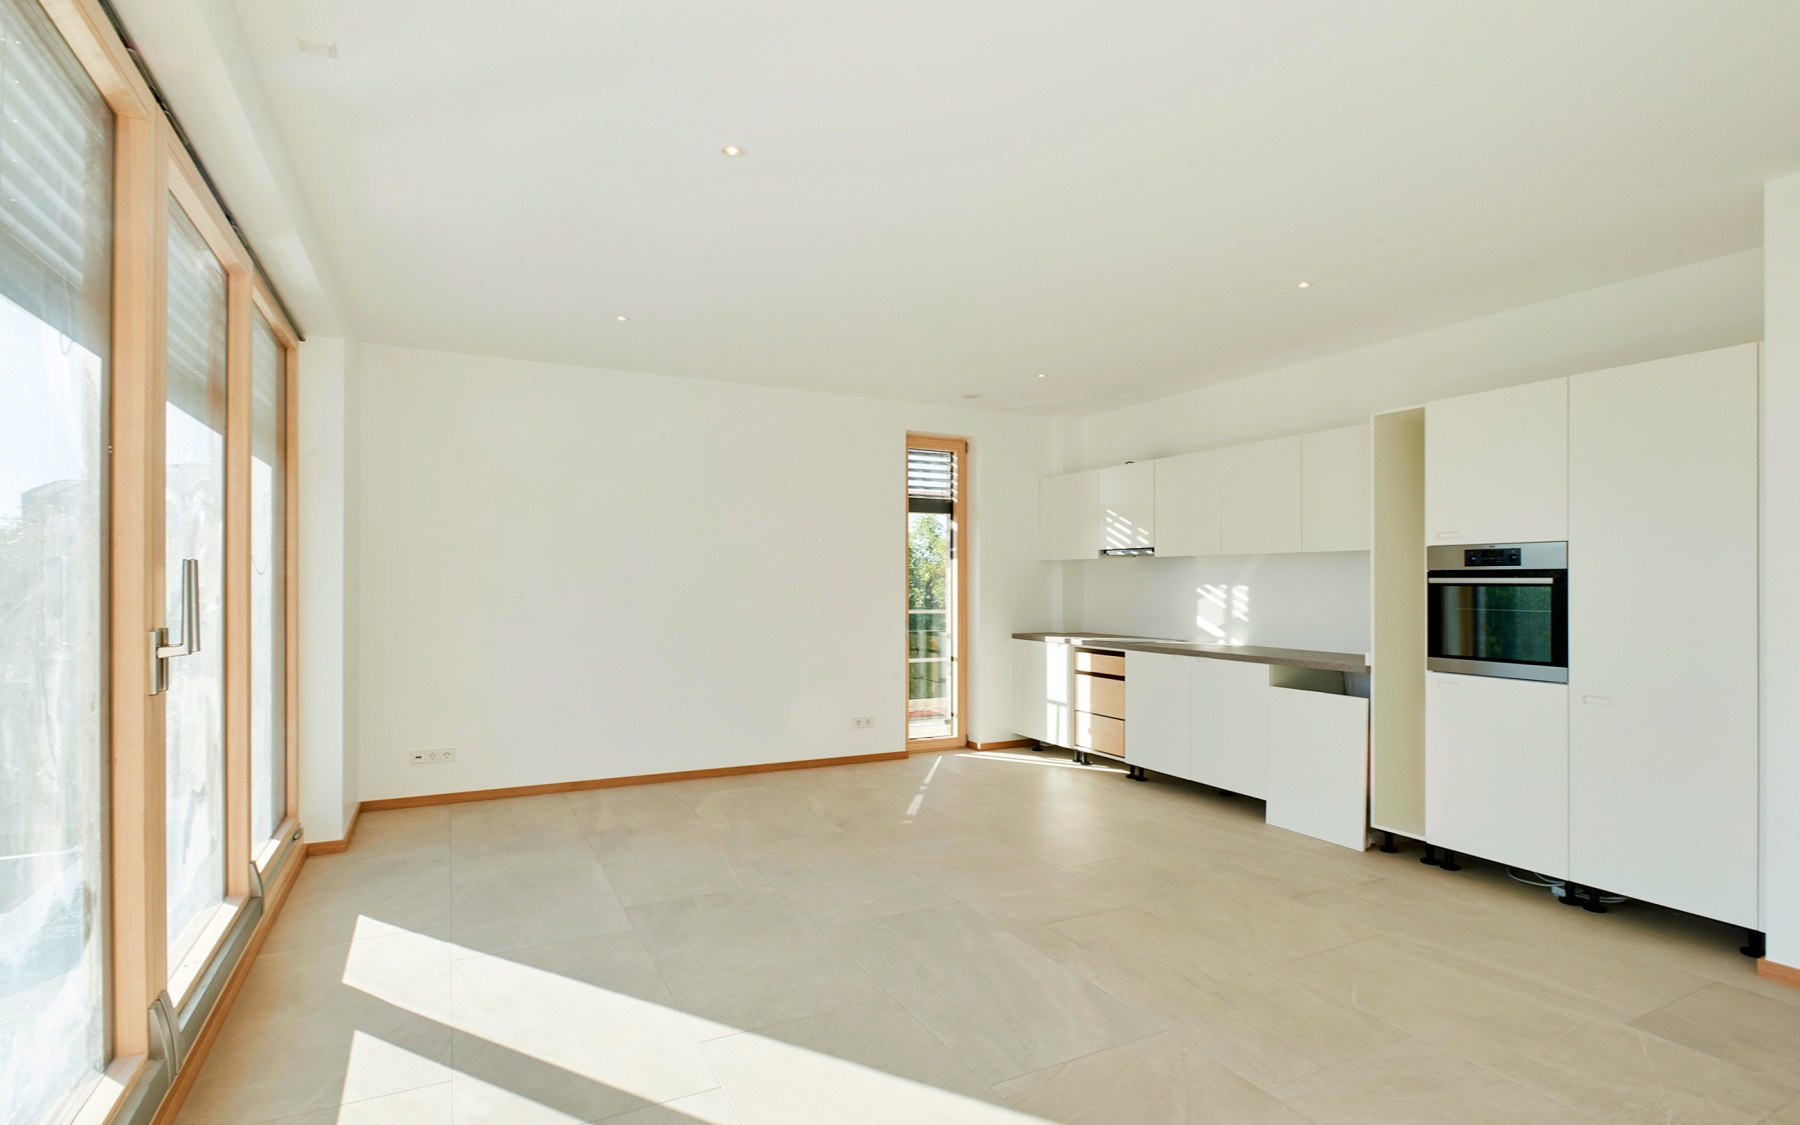 Penthouse in Hesperange - 3km from The Cloche D'Or